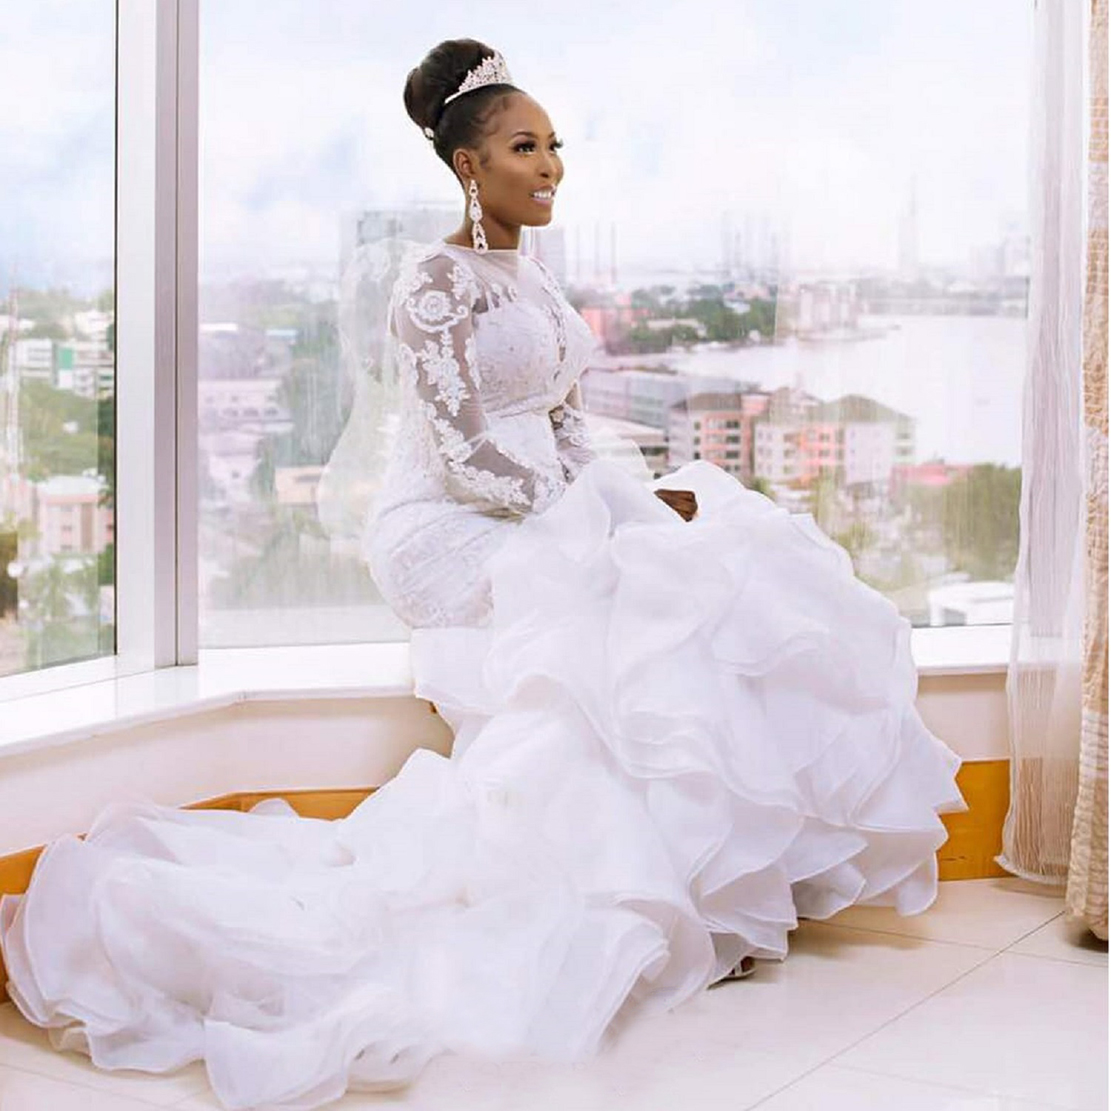 6d847b1980df8 China South Wedding Dress, China South Wedding Dress Manufacturers and  Suppliers on Alibaba.com